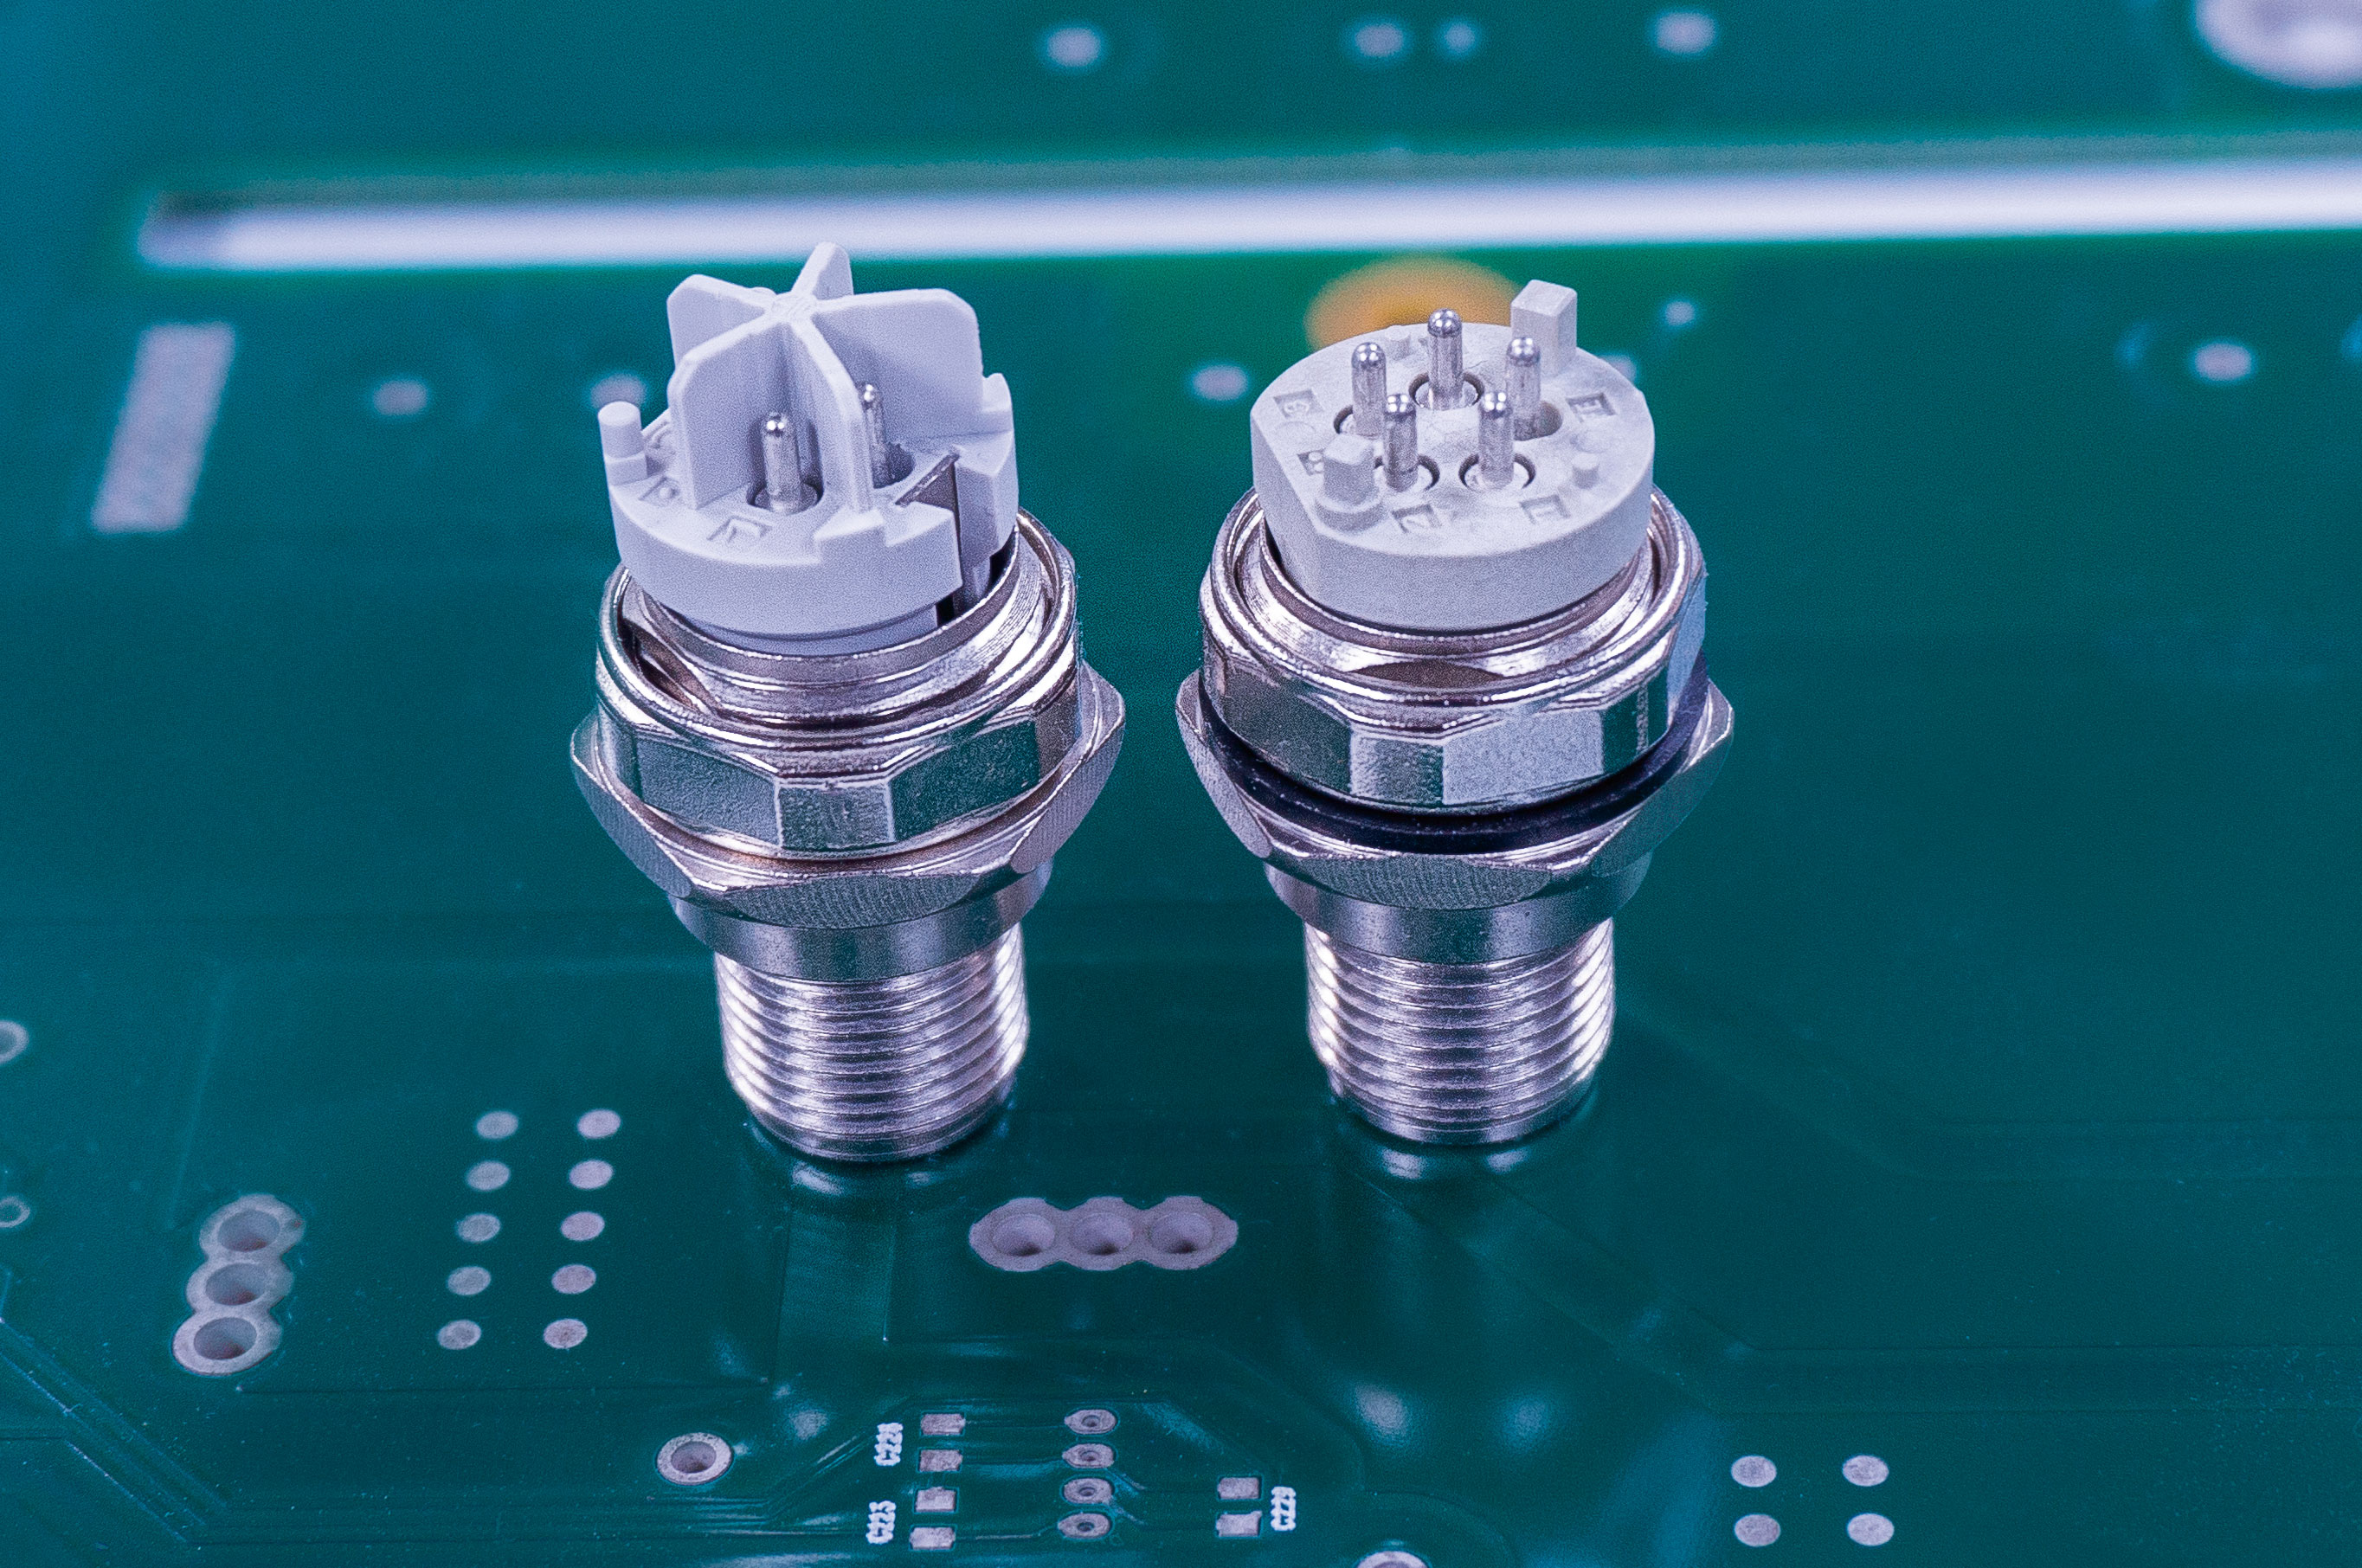 Standard for future power connectors